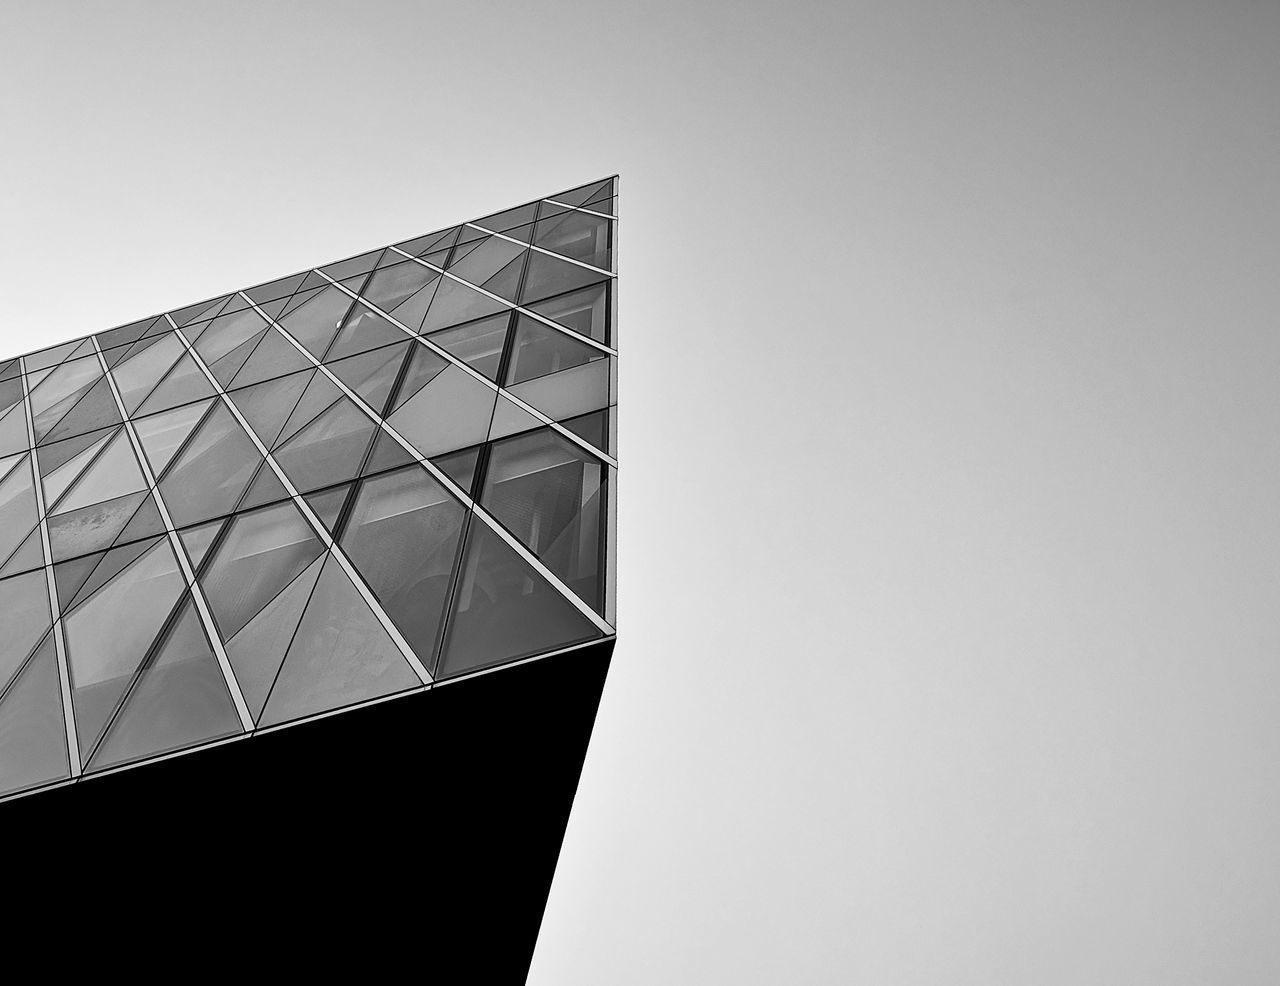 built structure, architecture, building exterior, sky, copy space, building, low angle view, clear sky, no people, city, day, nature, office building exterior, glass - material, office, modern, outdoors, geometric shape, pattern, window